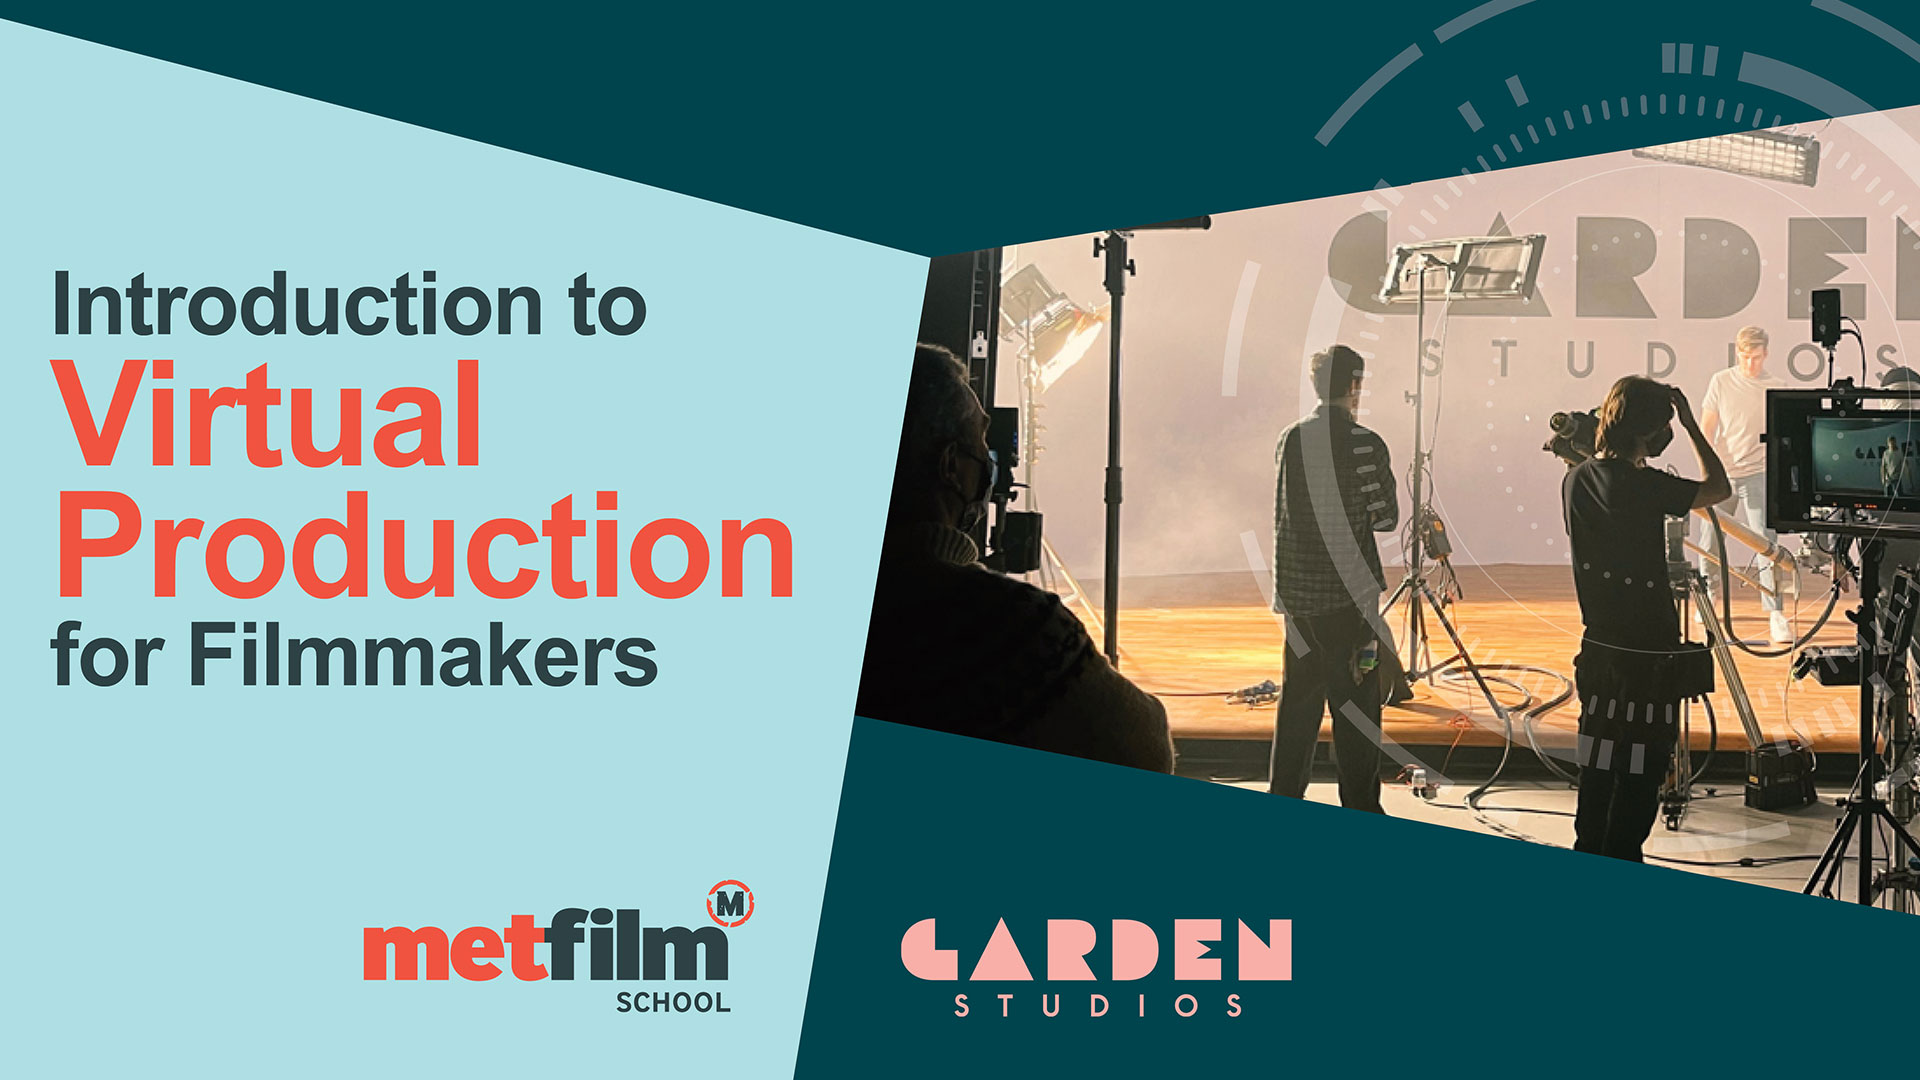 Introduction to Virtual Production for Filmmakers